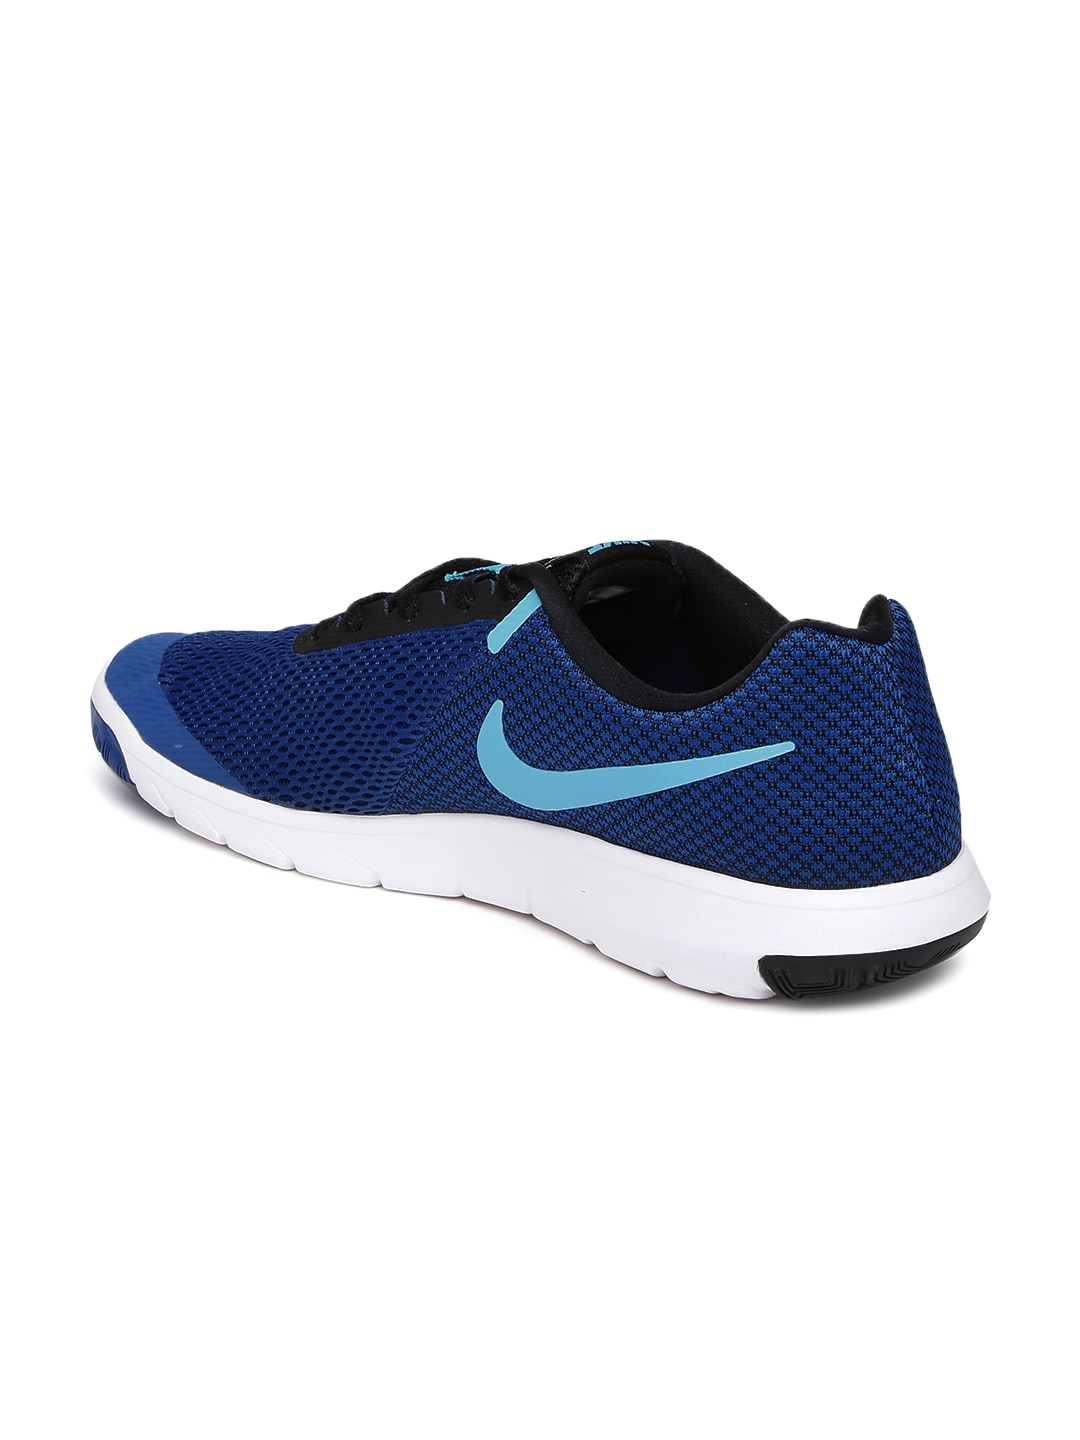 Nike Mens Sports Shoes Myntra - Style Guru: Fashion, Glitz, Glamour, Style unplugged